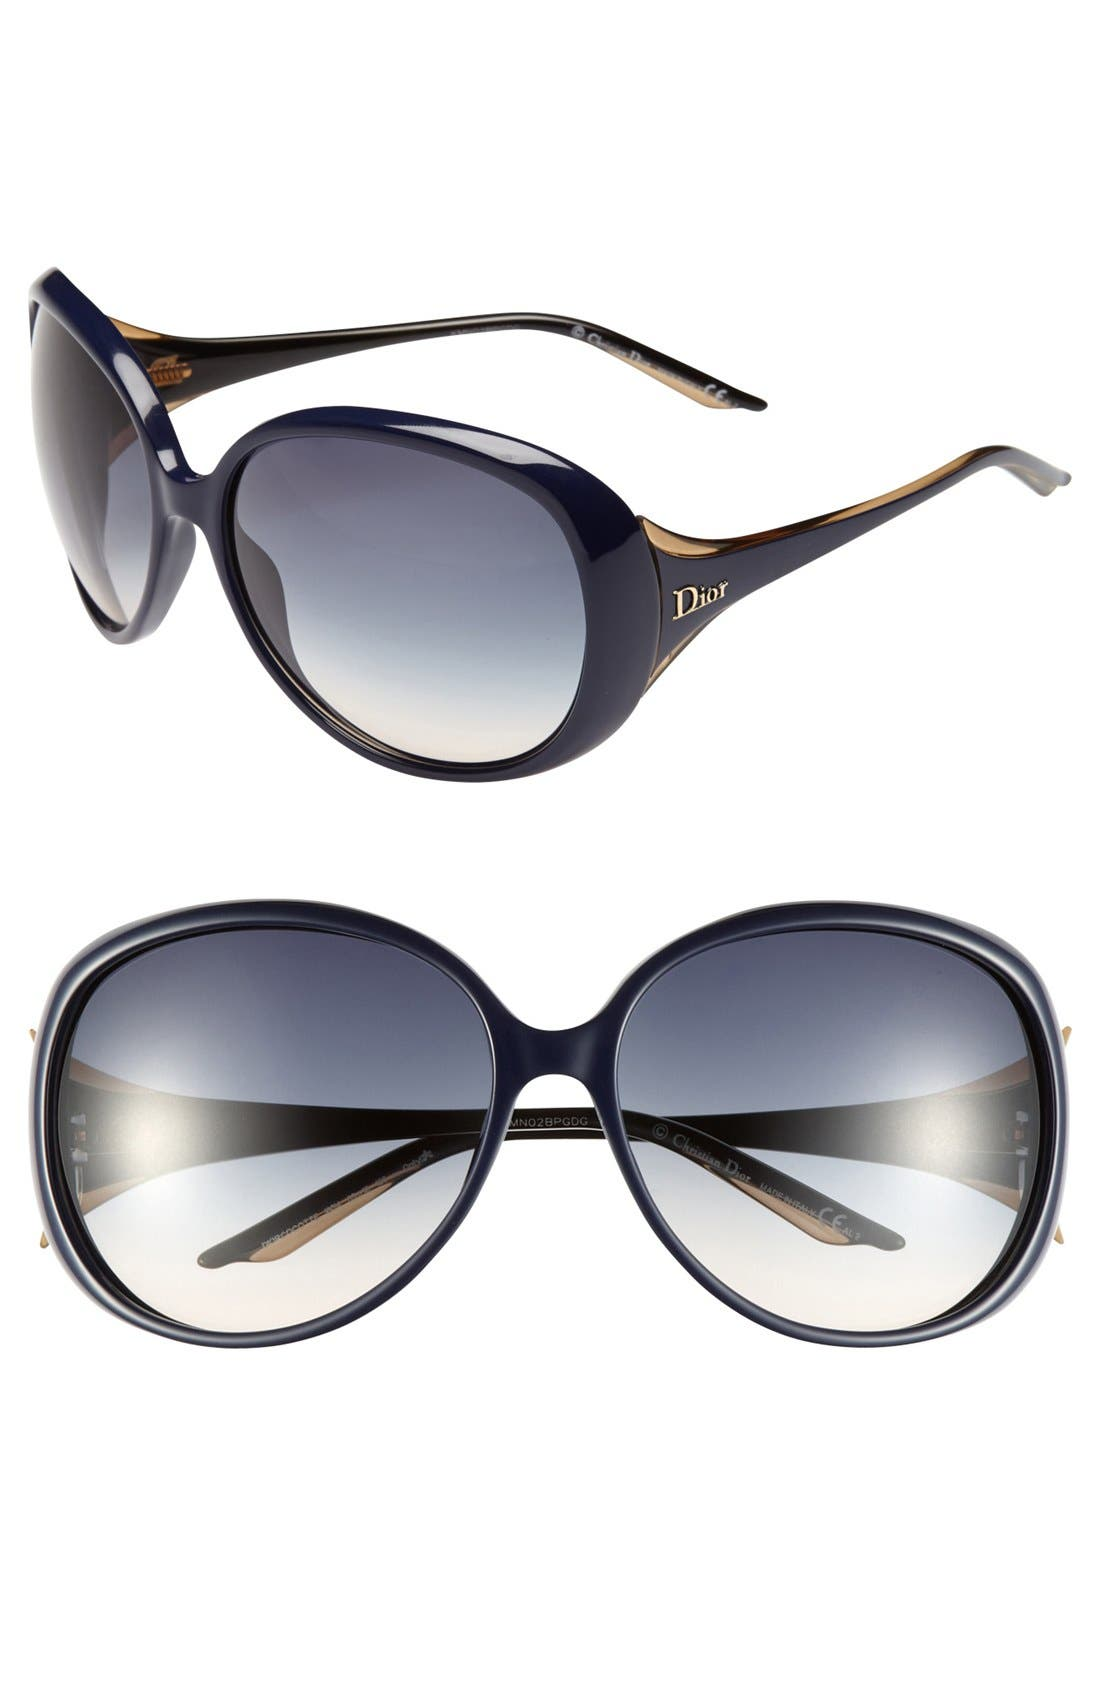 Main Image - Dior 'Cocotte' 63mm Oversized Sunglasses